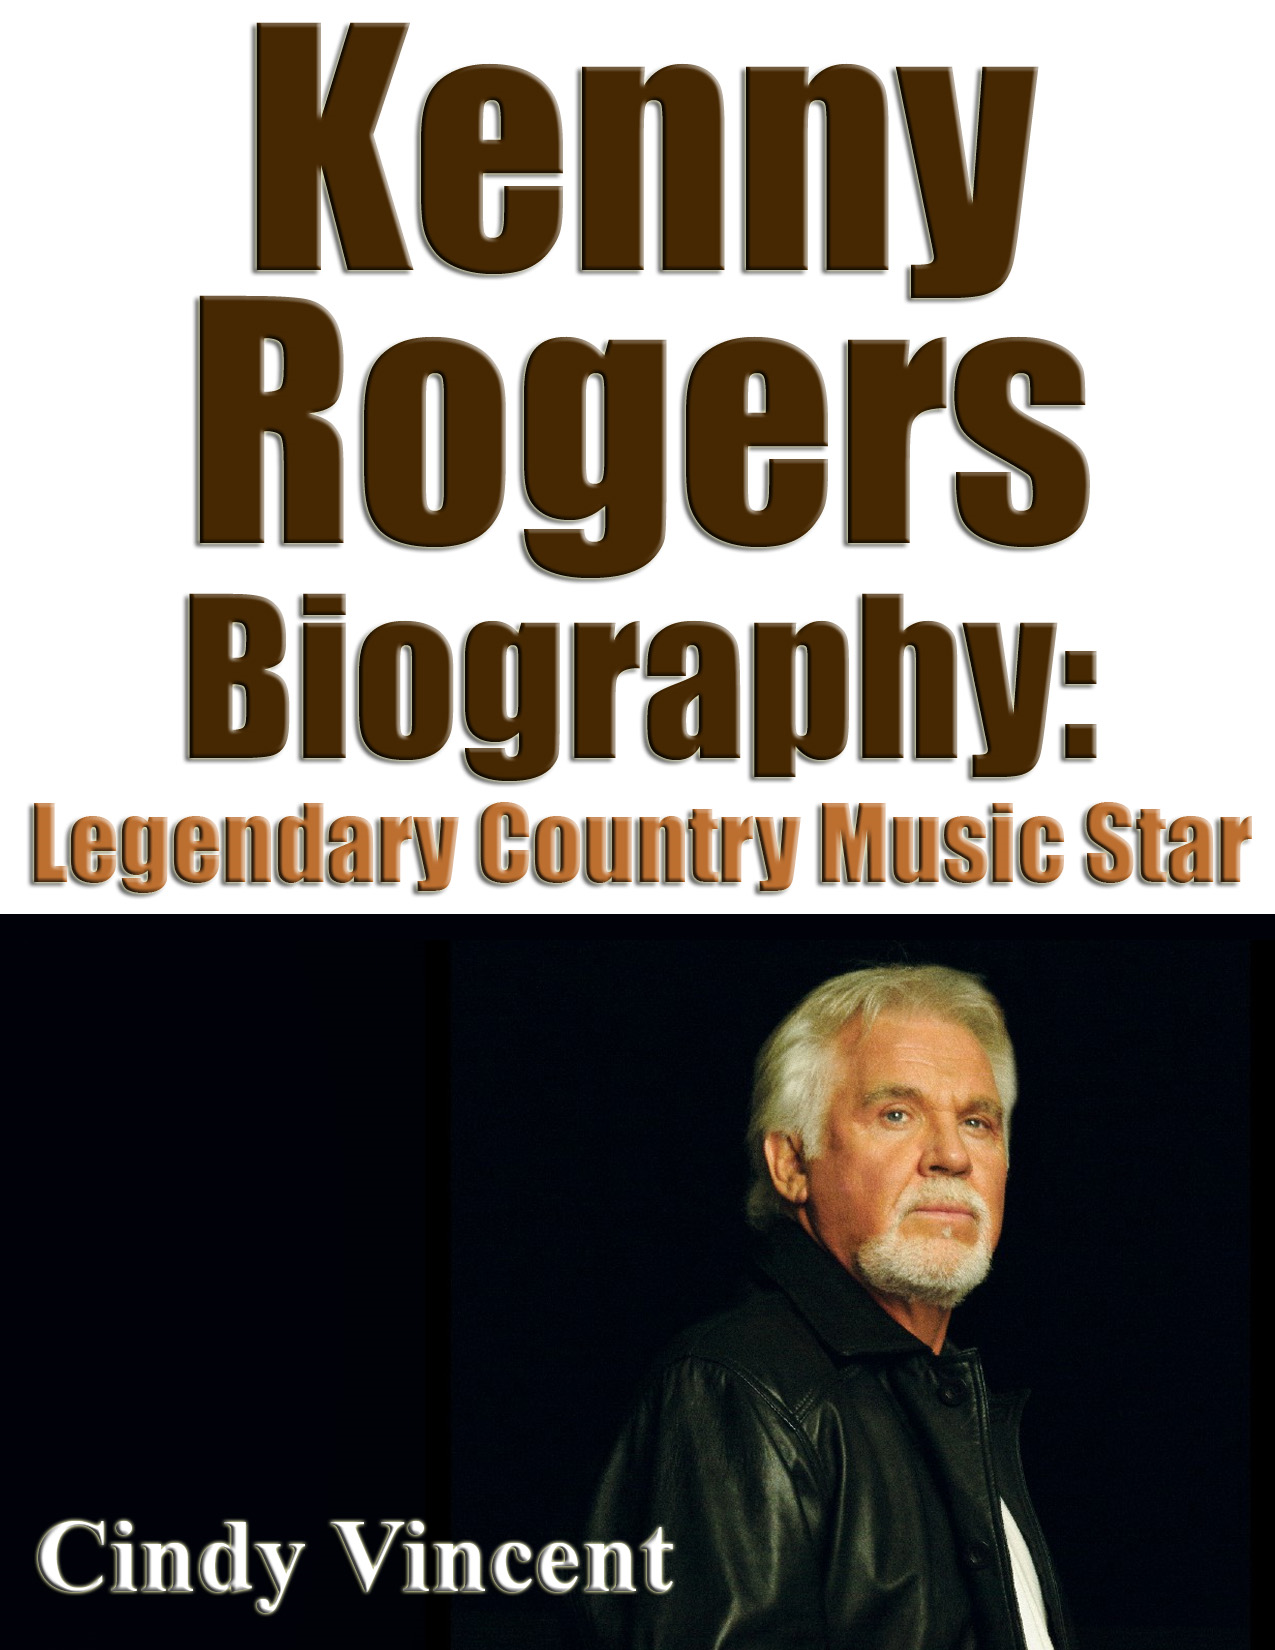 Kenny Rogers Biography: Legendary Country Music Star